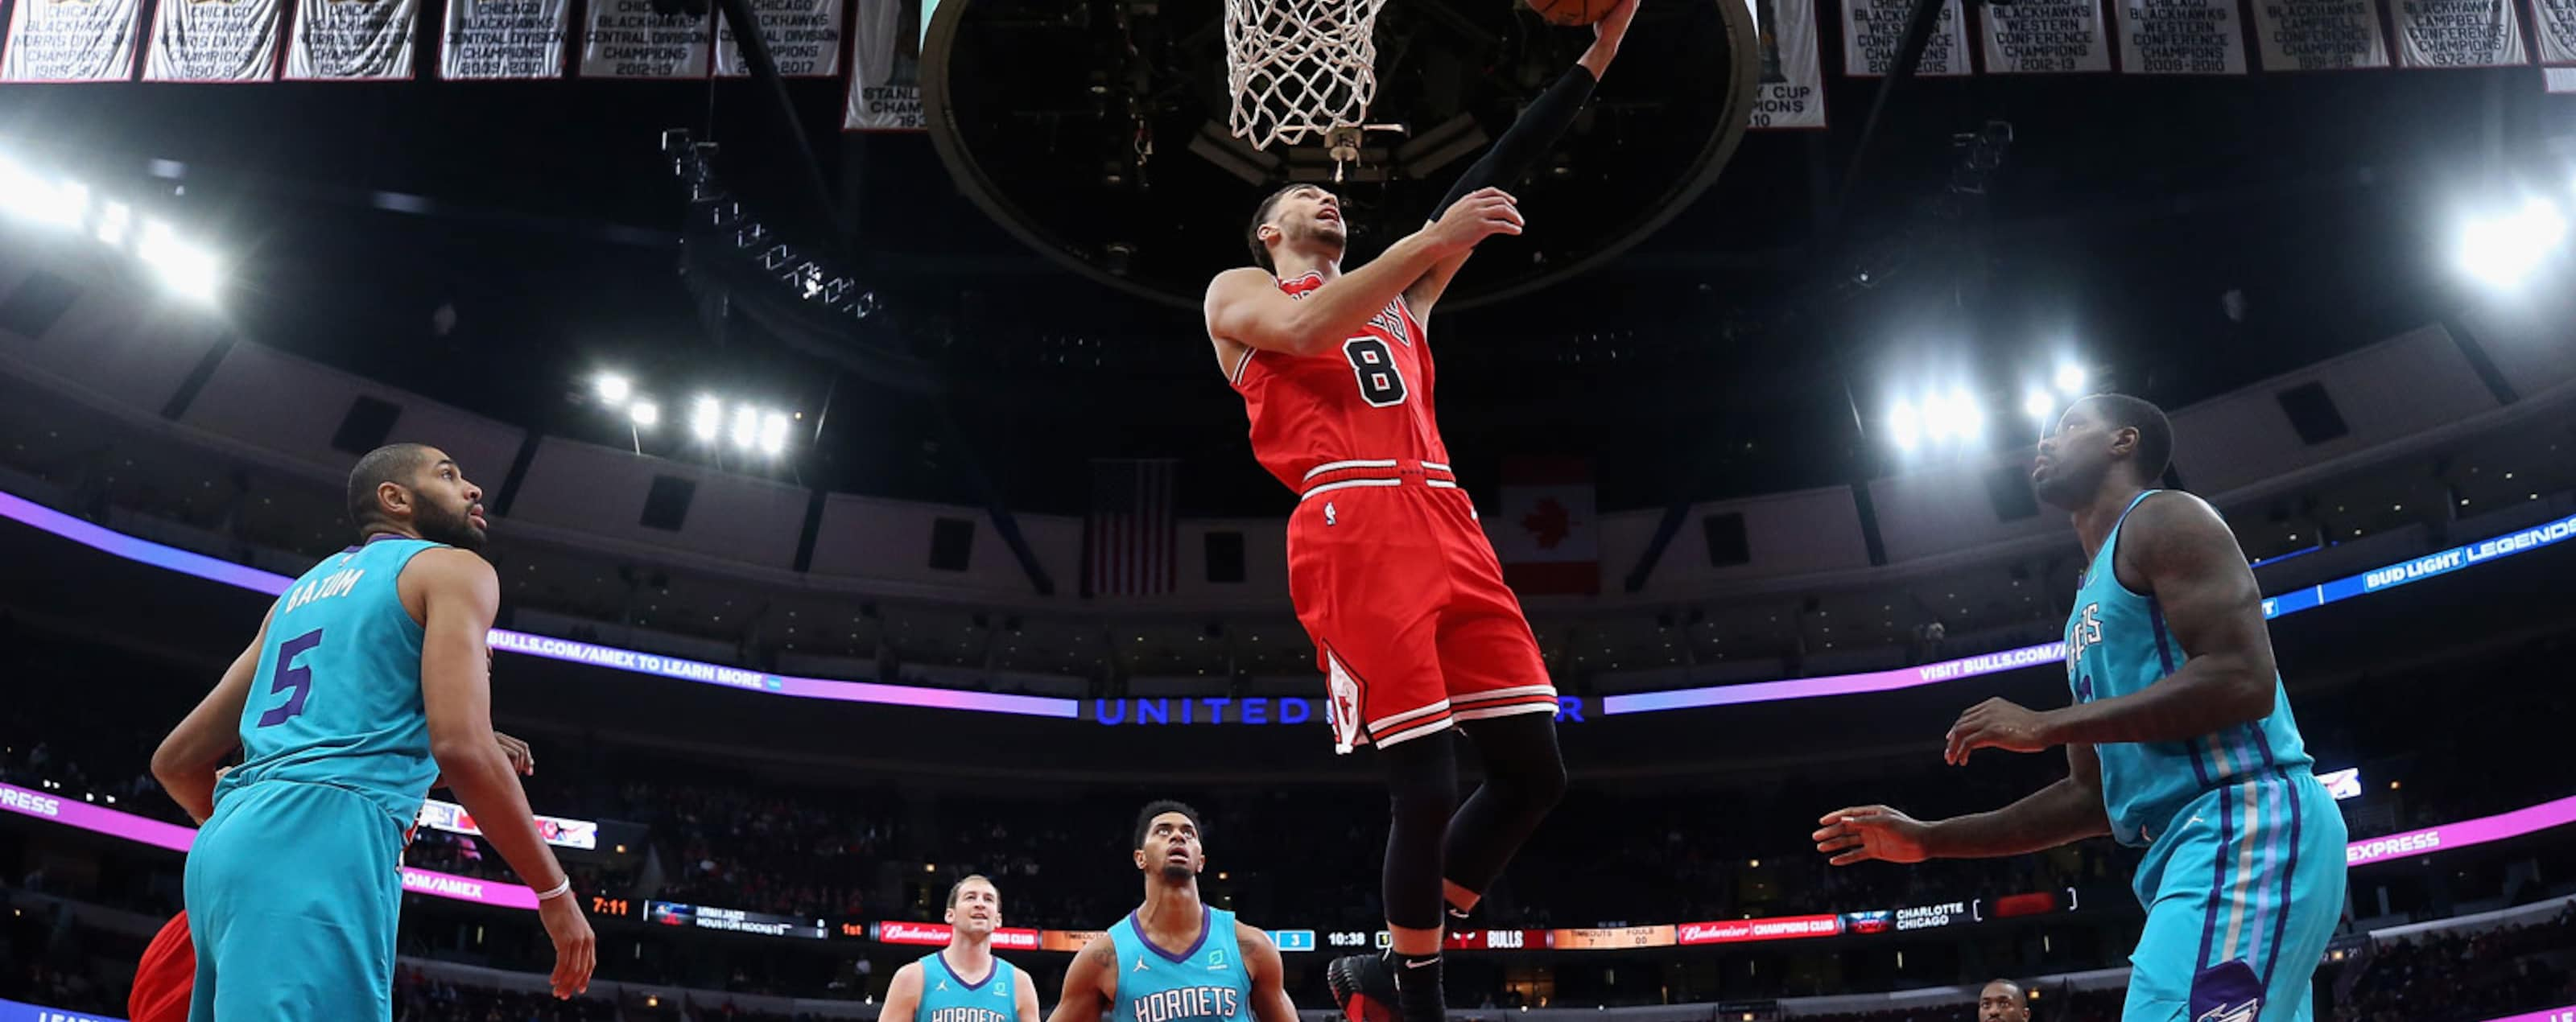 Zach LaVine #8 of the Chicago Bulls drives the lane to put up a shot against the Charlotte Hornets at the United Center on October 24, 2018 in Chicago, Illinois.